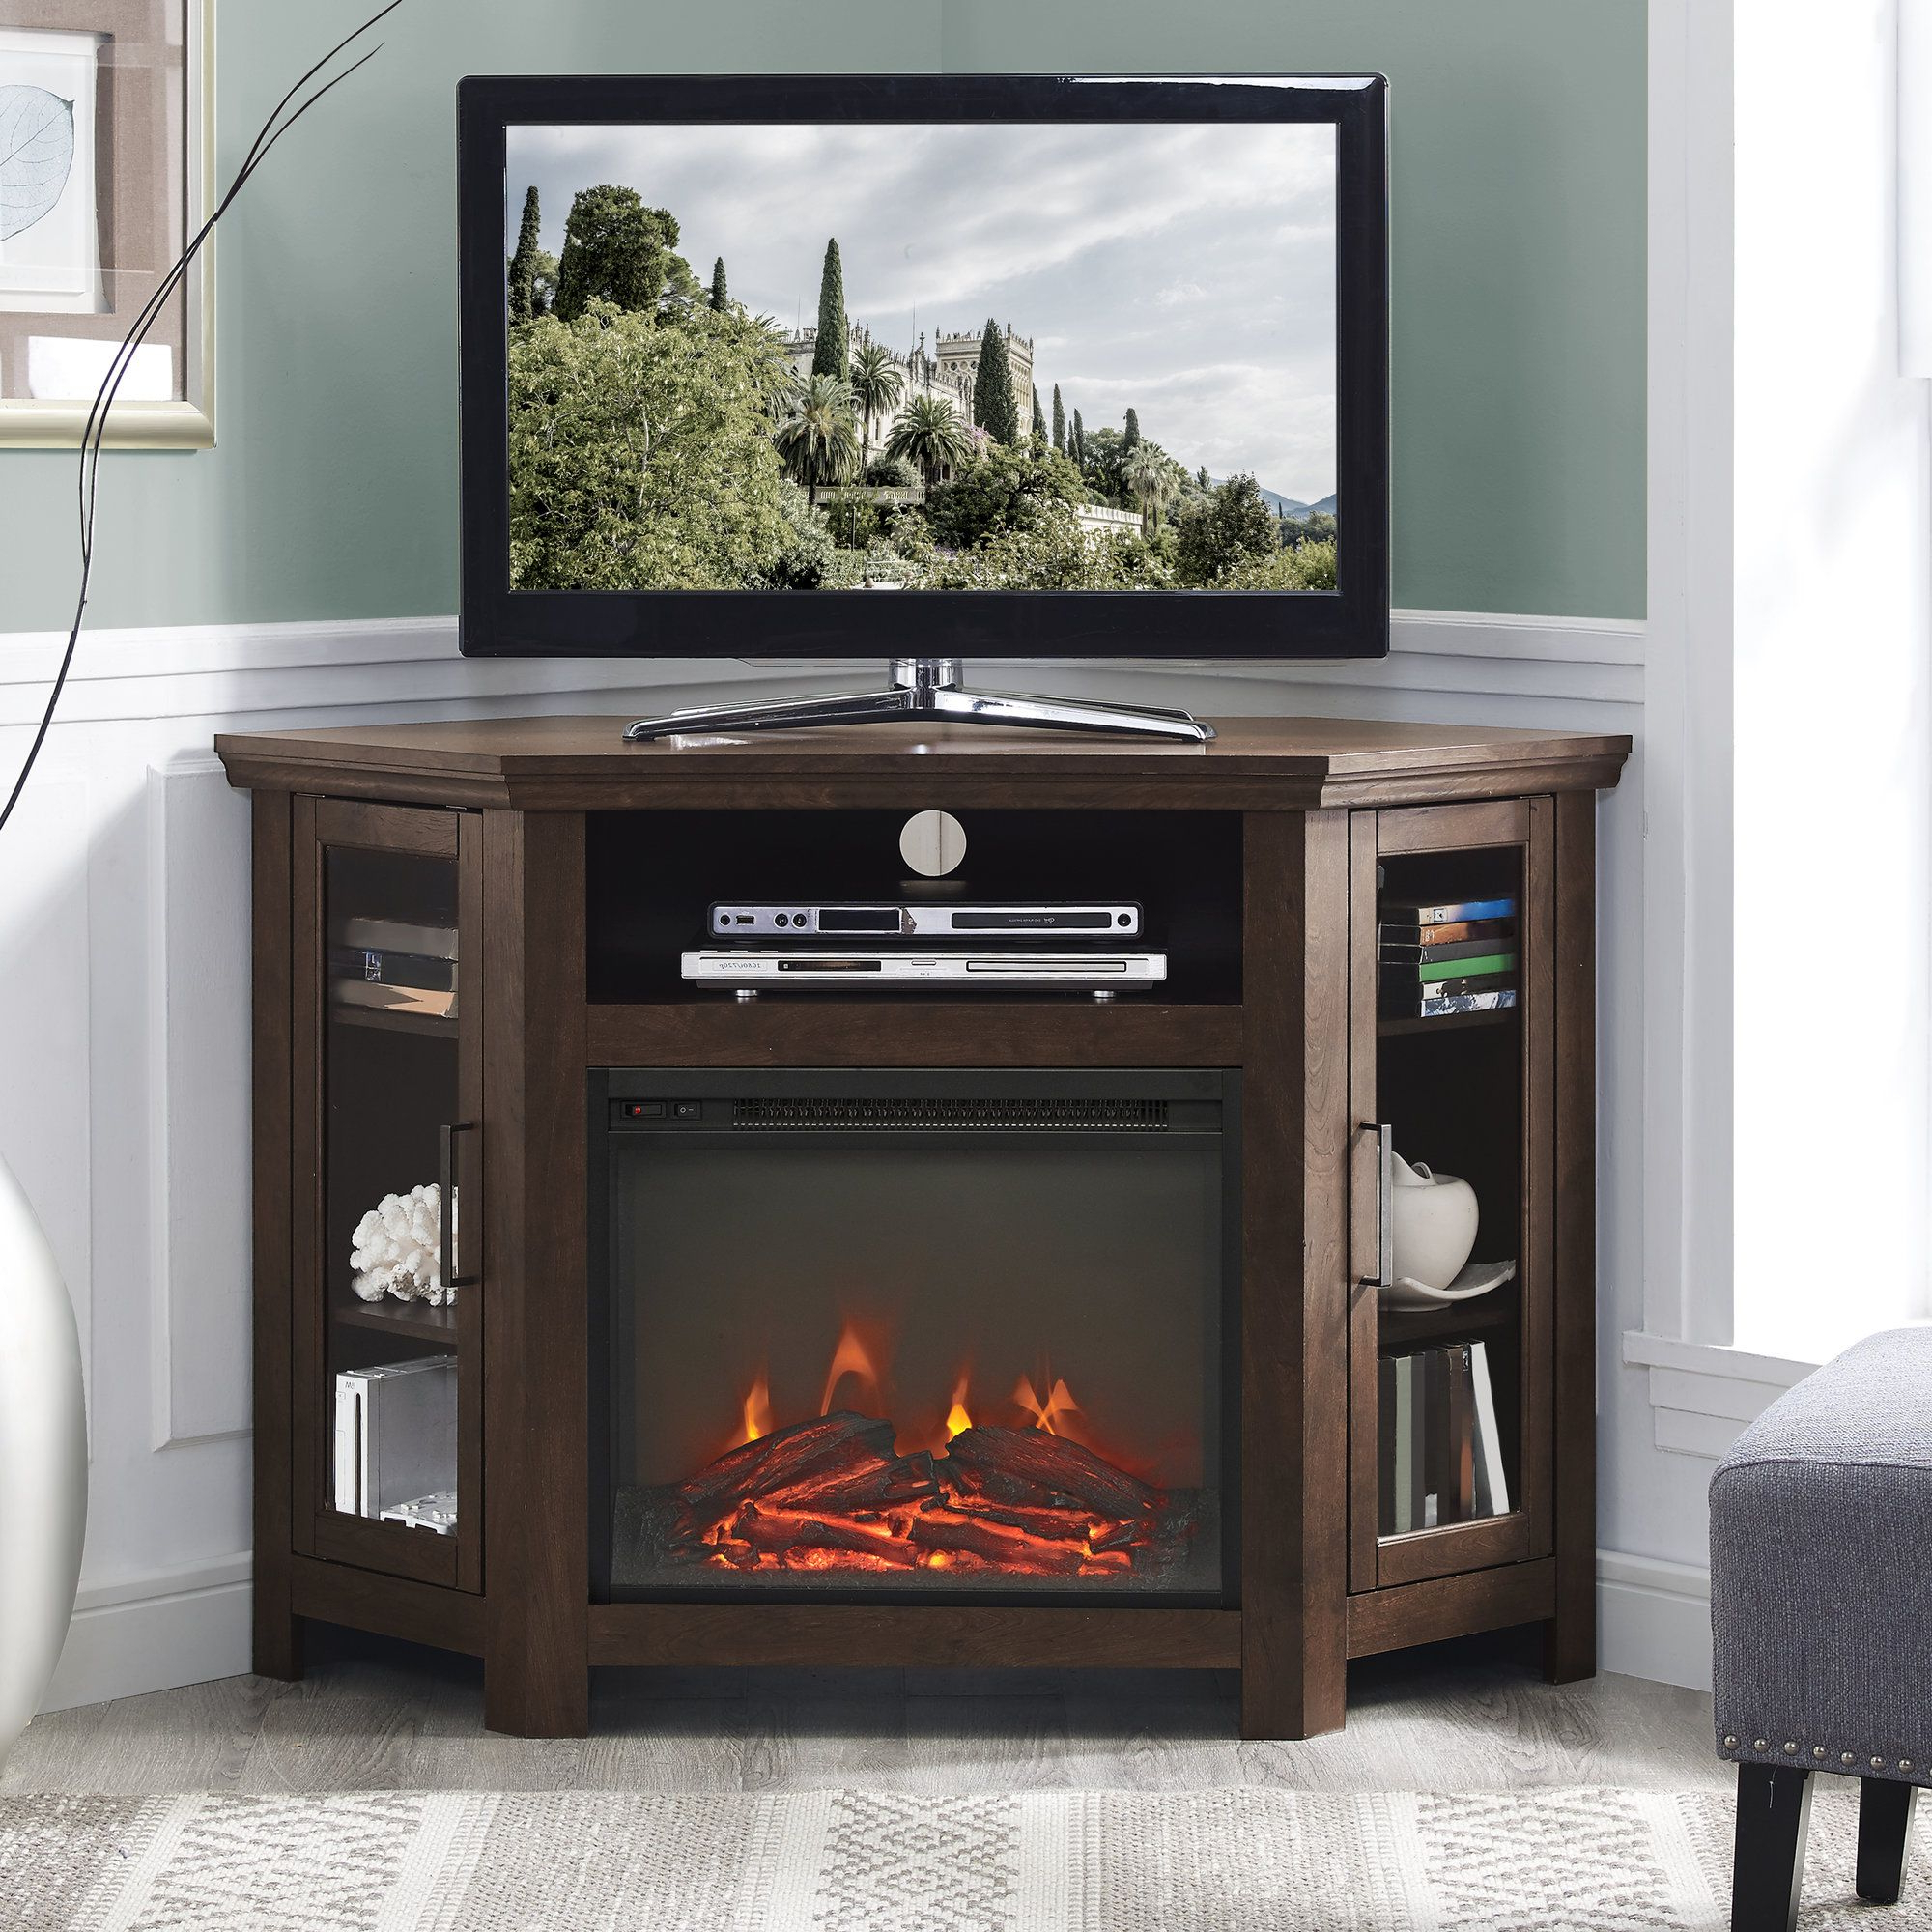 Corner Tv Stand With Electric Fireplace   Fireplace Tv In Corner Entertainment Tv Stands (View 5 of 20)